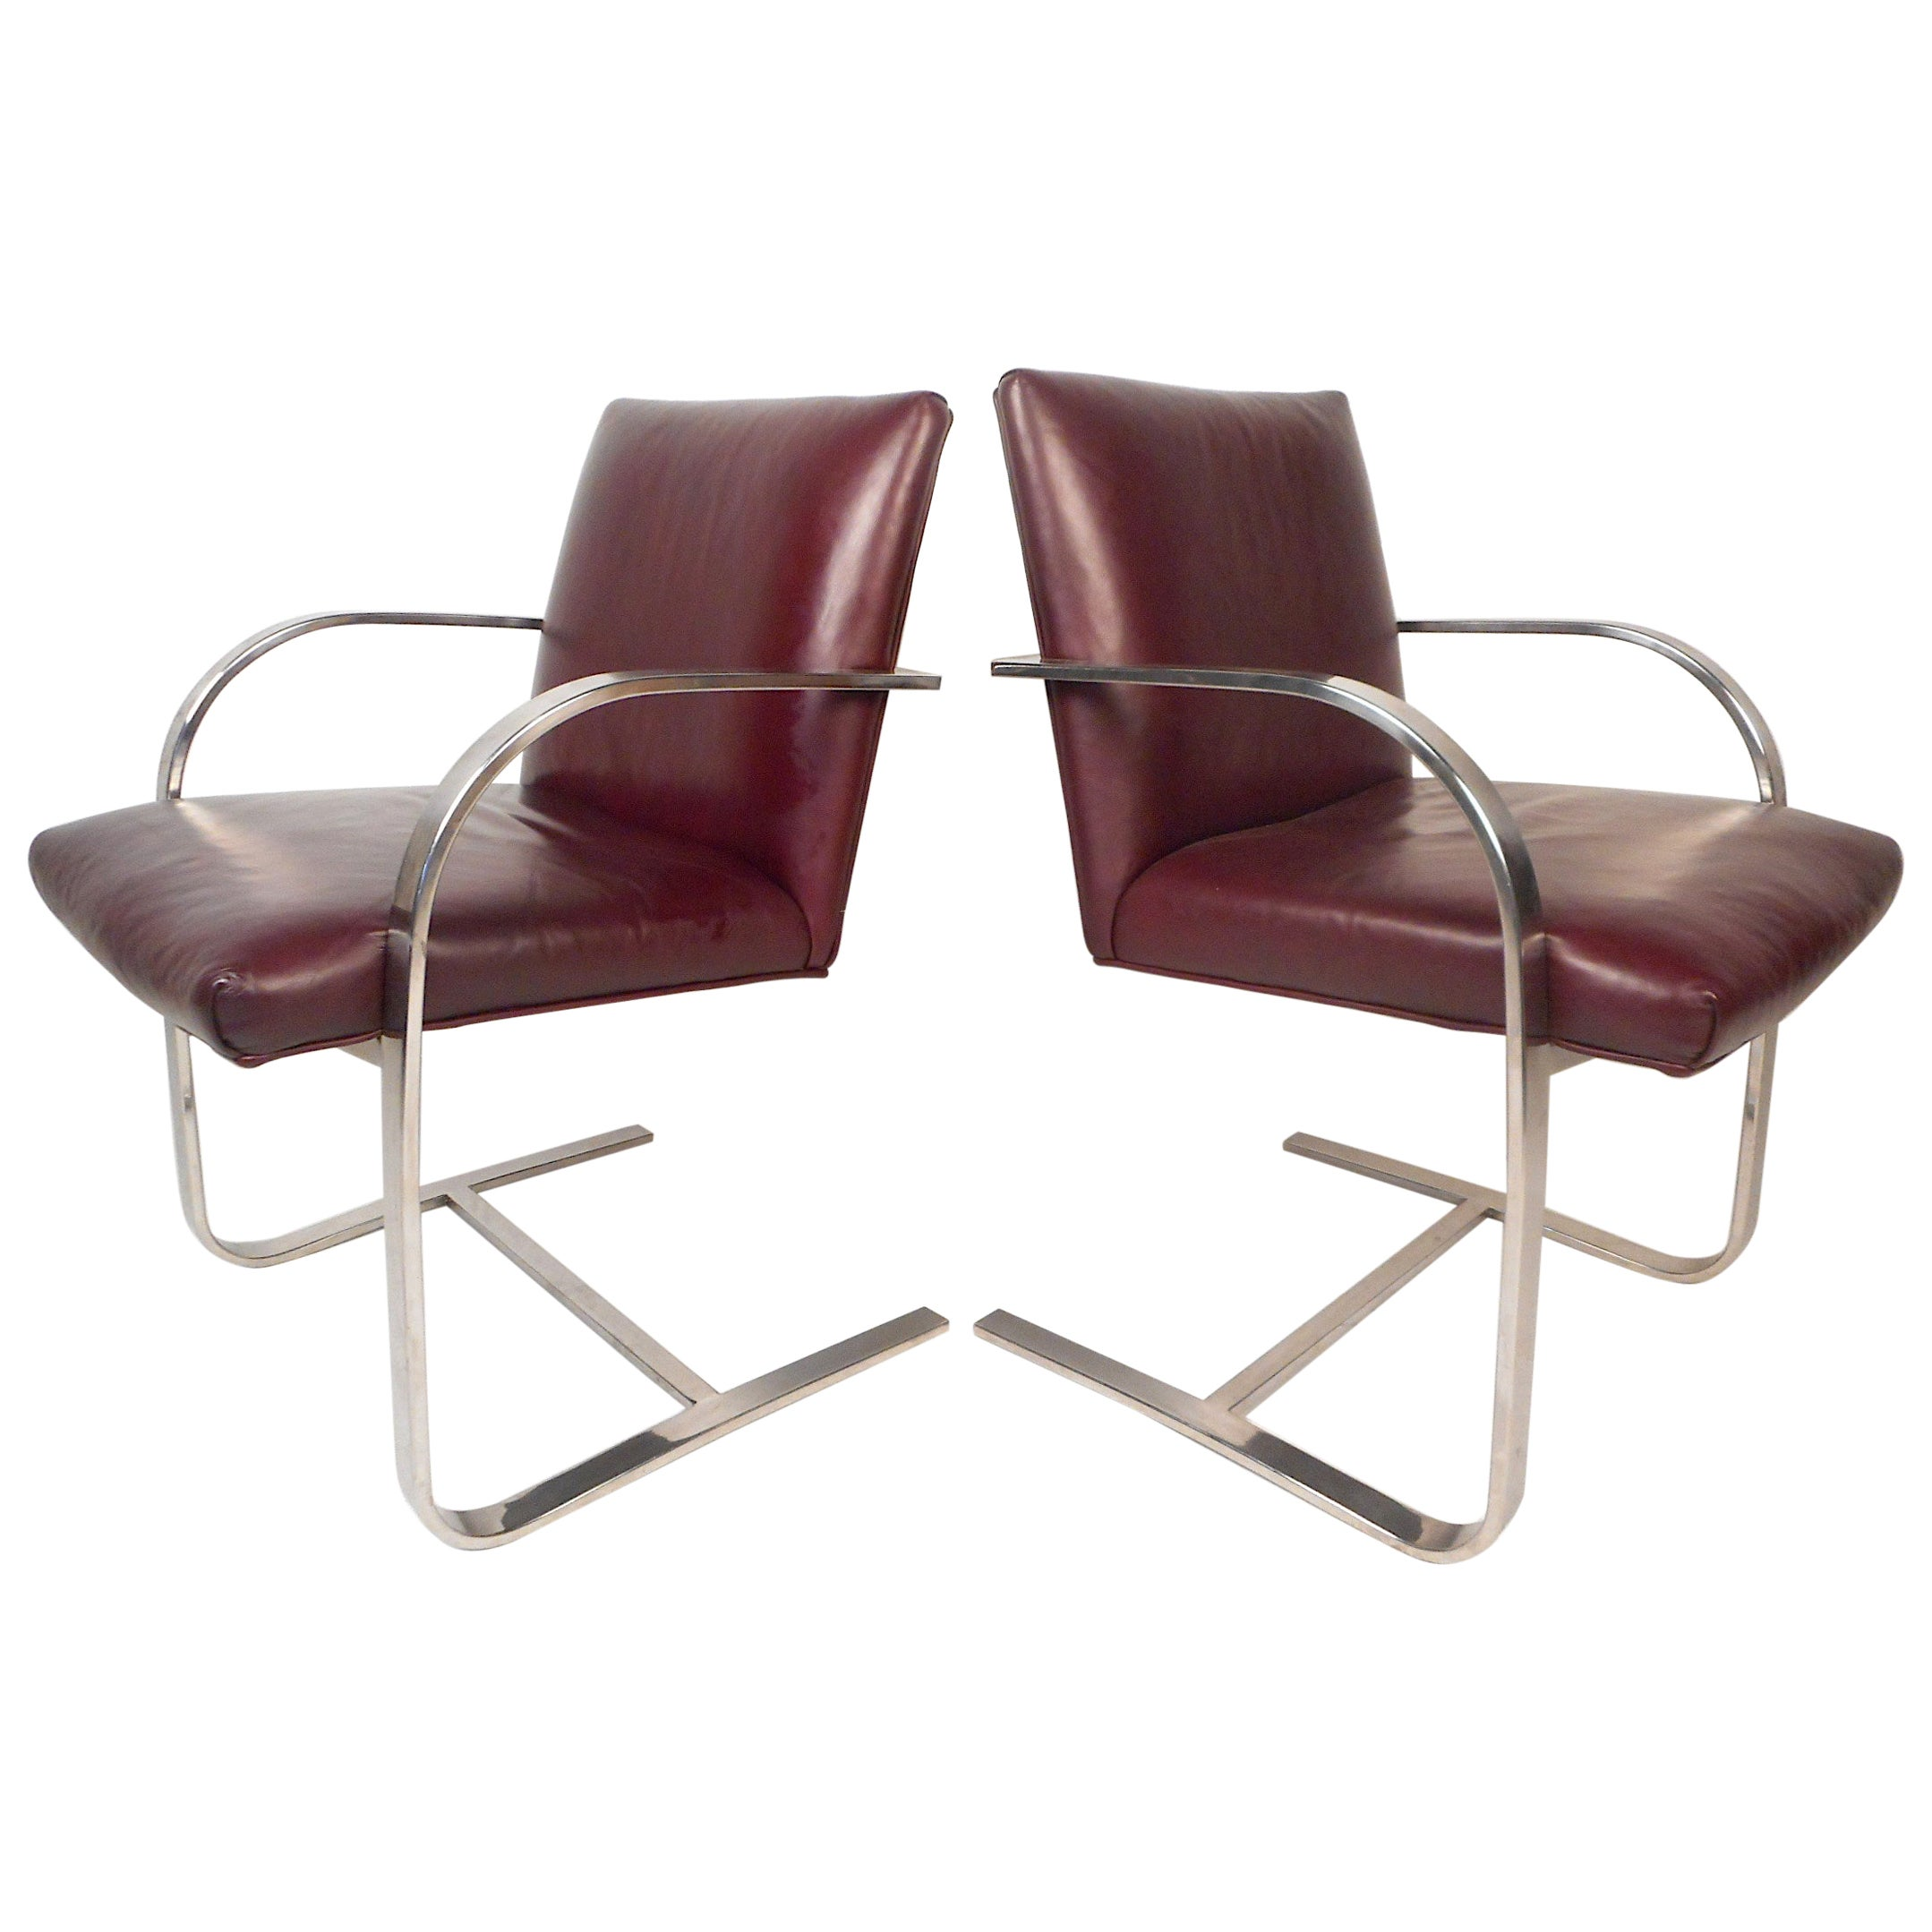 Pair of Mid-Century Cantilever Chairs